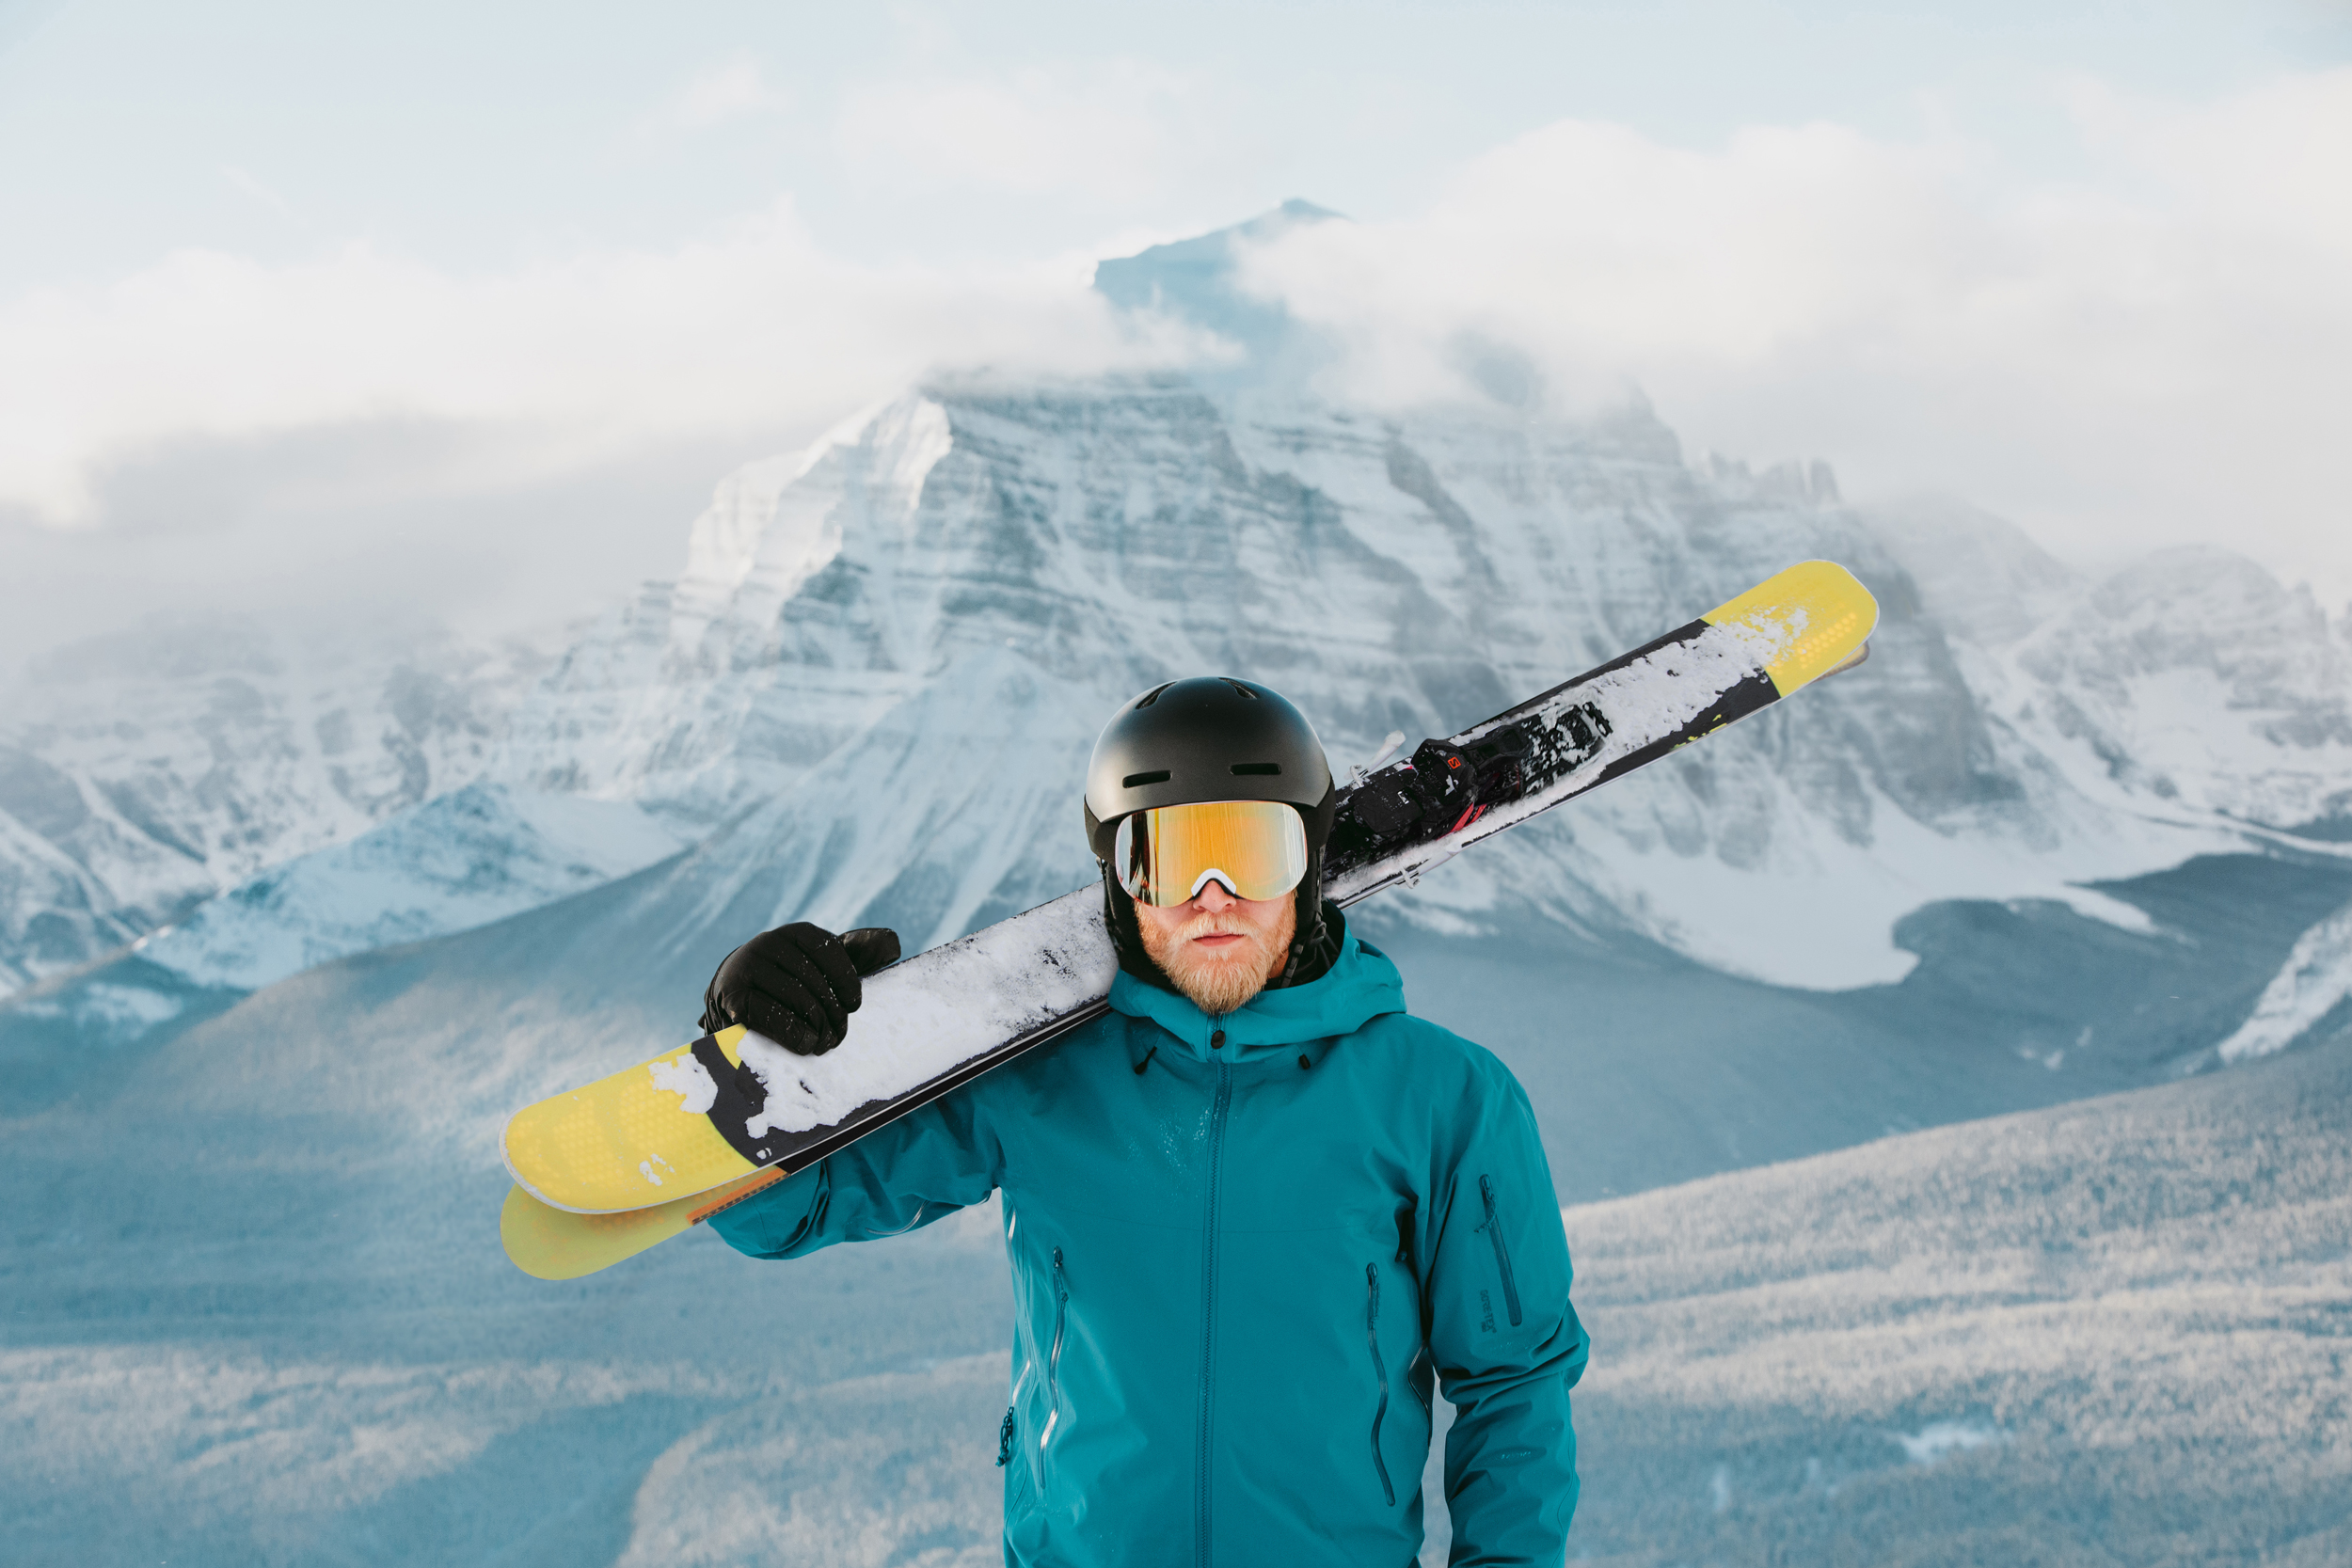 MikeSeehagel_TA-Ready-Winter-LakeLouise-Day02_5D4_3697-02.jpg